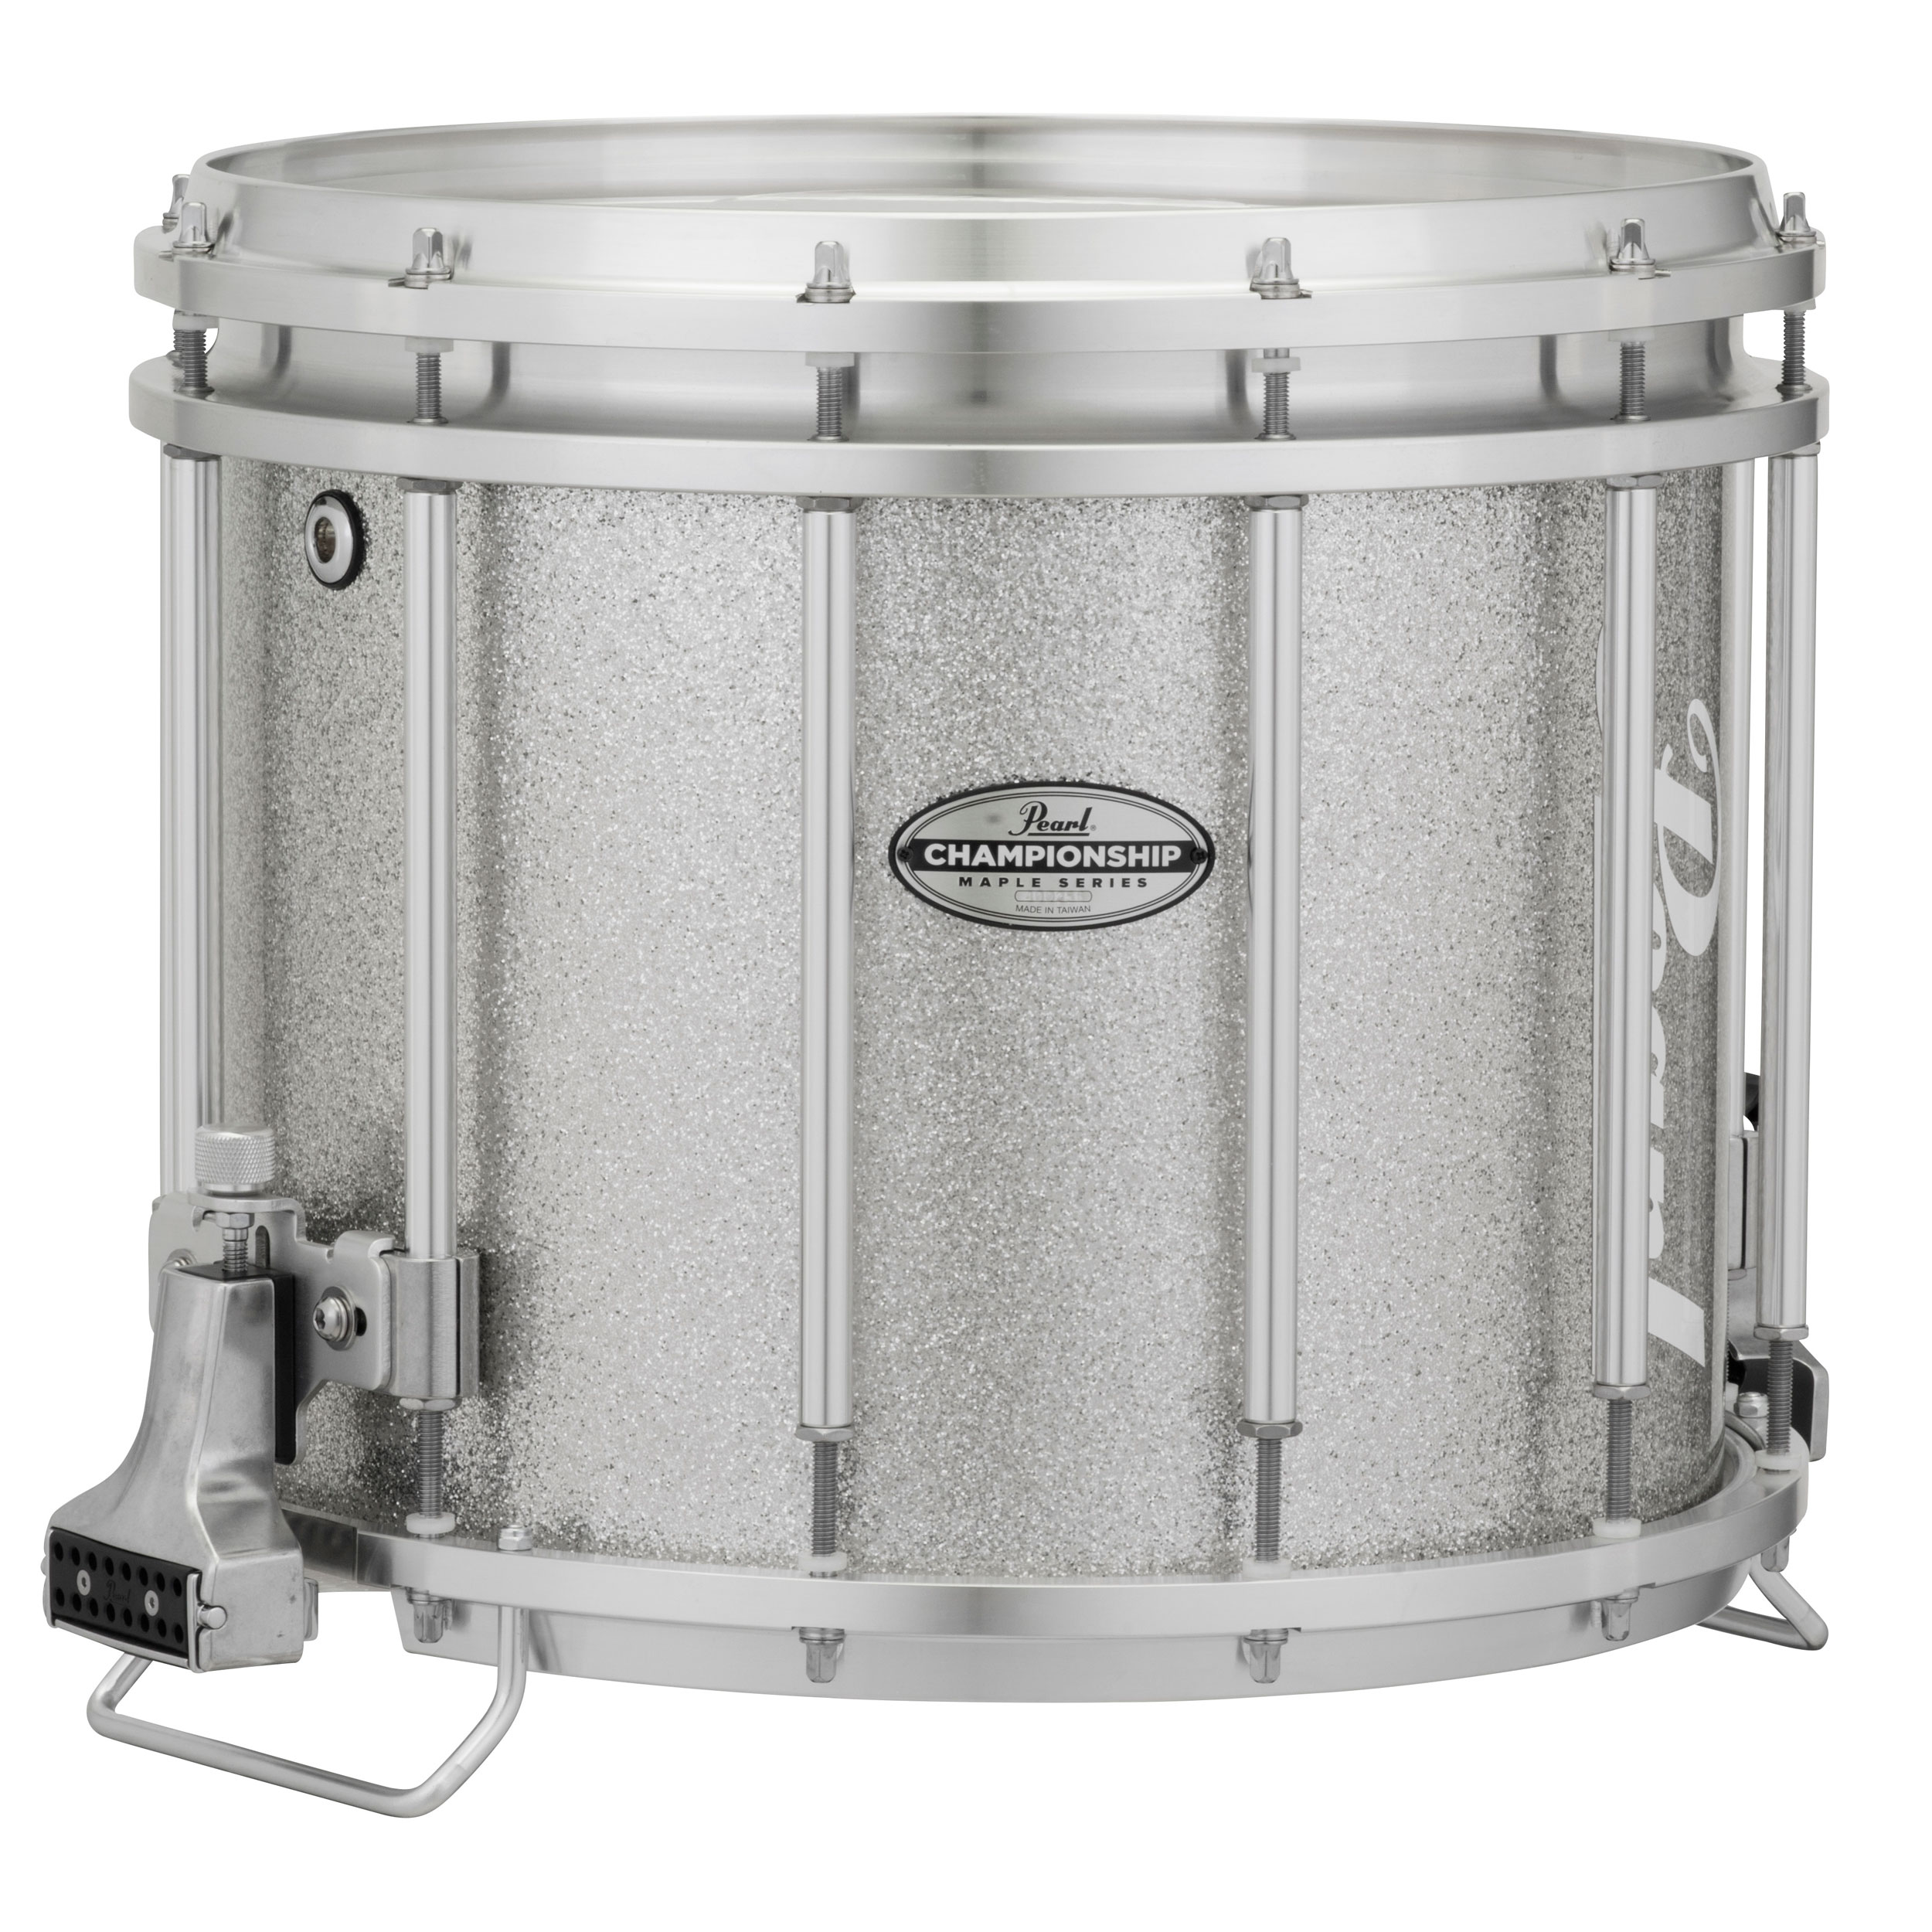 "Pearl 14"" (Diameter) x 12"" (Deep) FFXM Championship Maple Marching Snare Drum in Silver Sparkle"